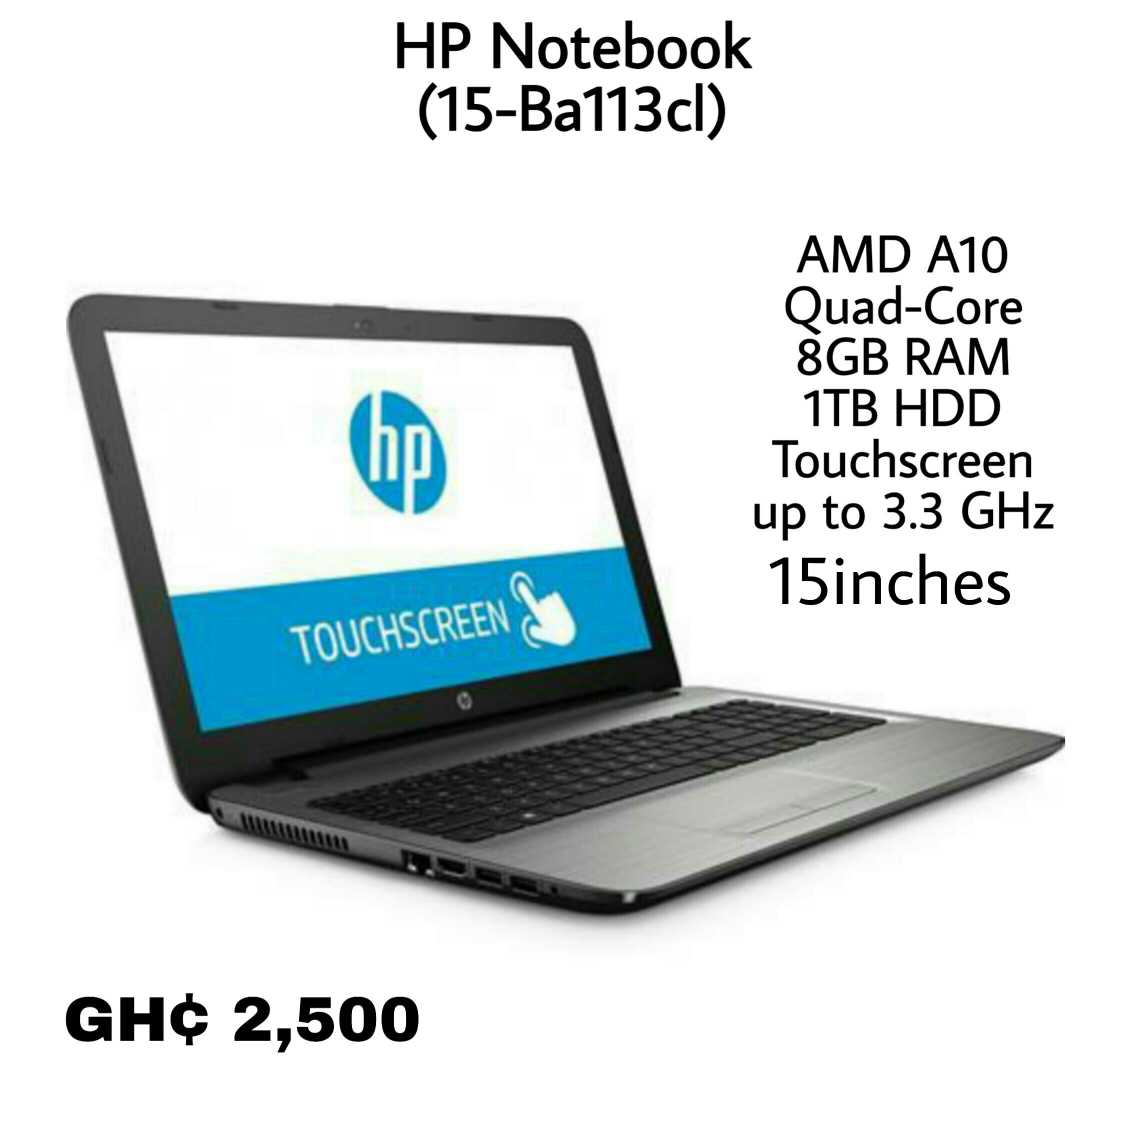 hp notebook amd a10 price in ghana